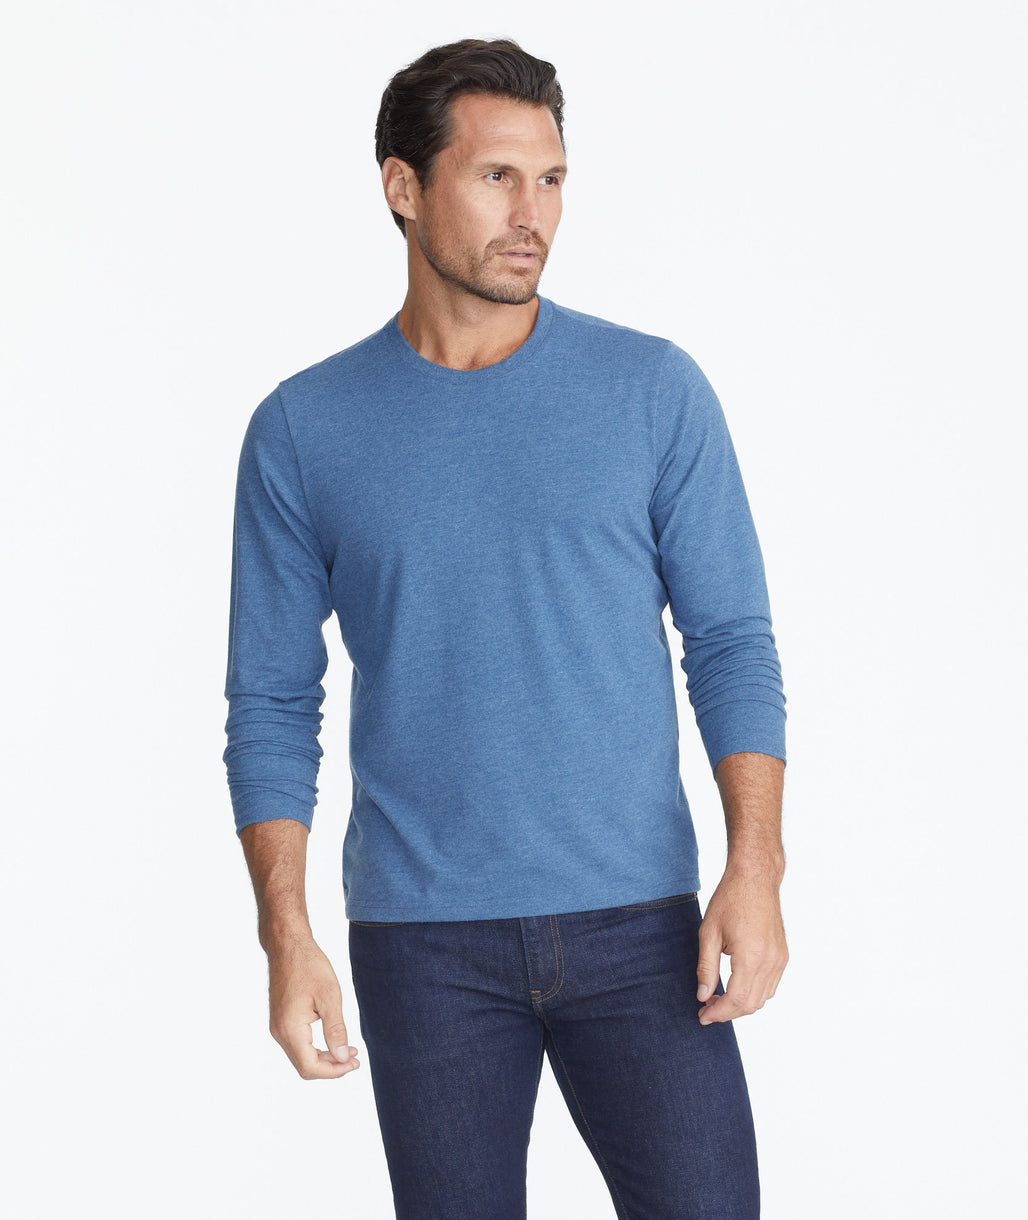 Model wearing a Blue Ultrasoft Long-Sleeve Tee